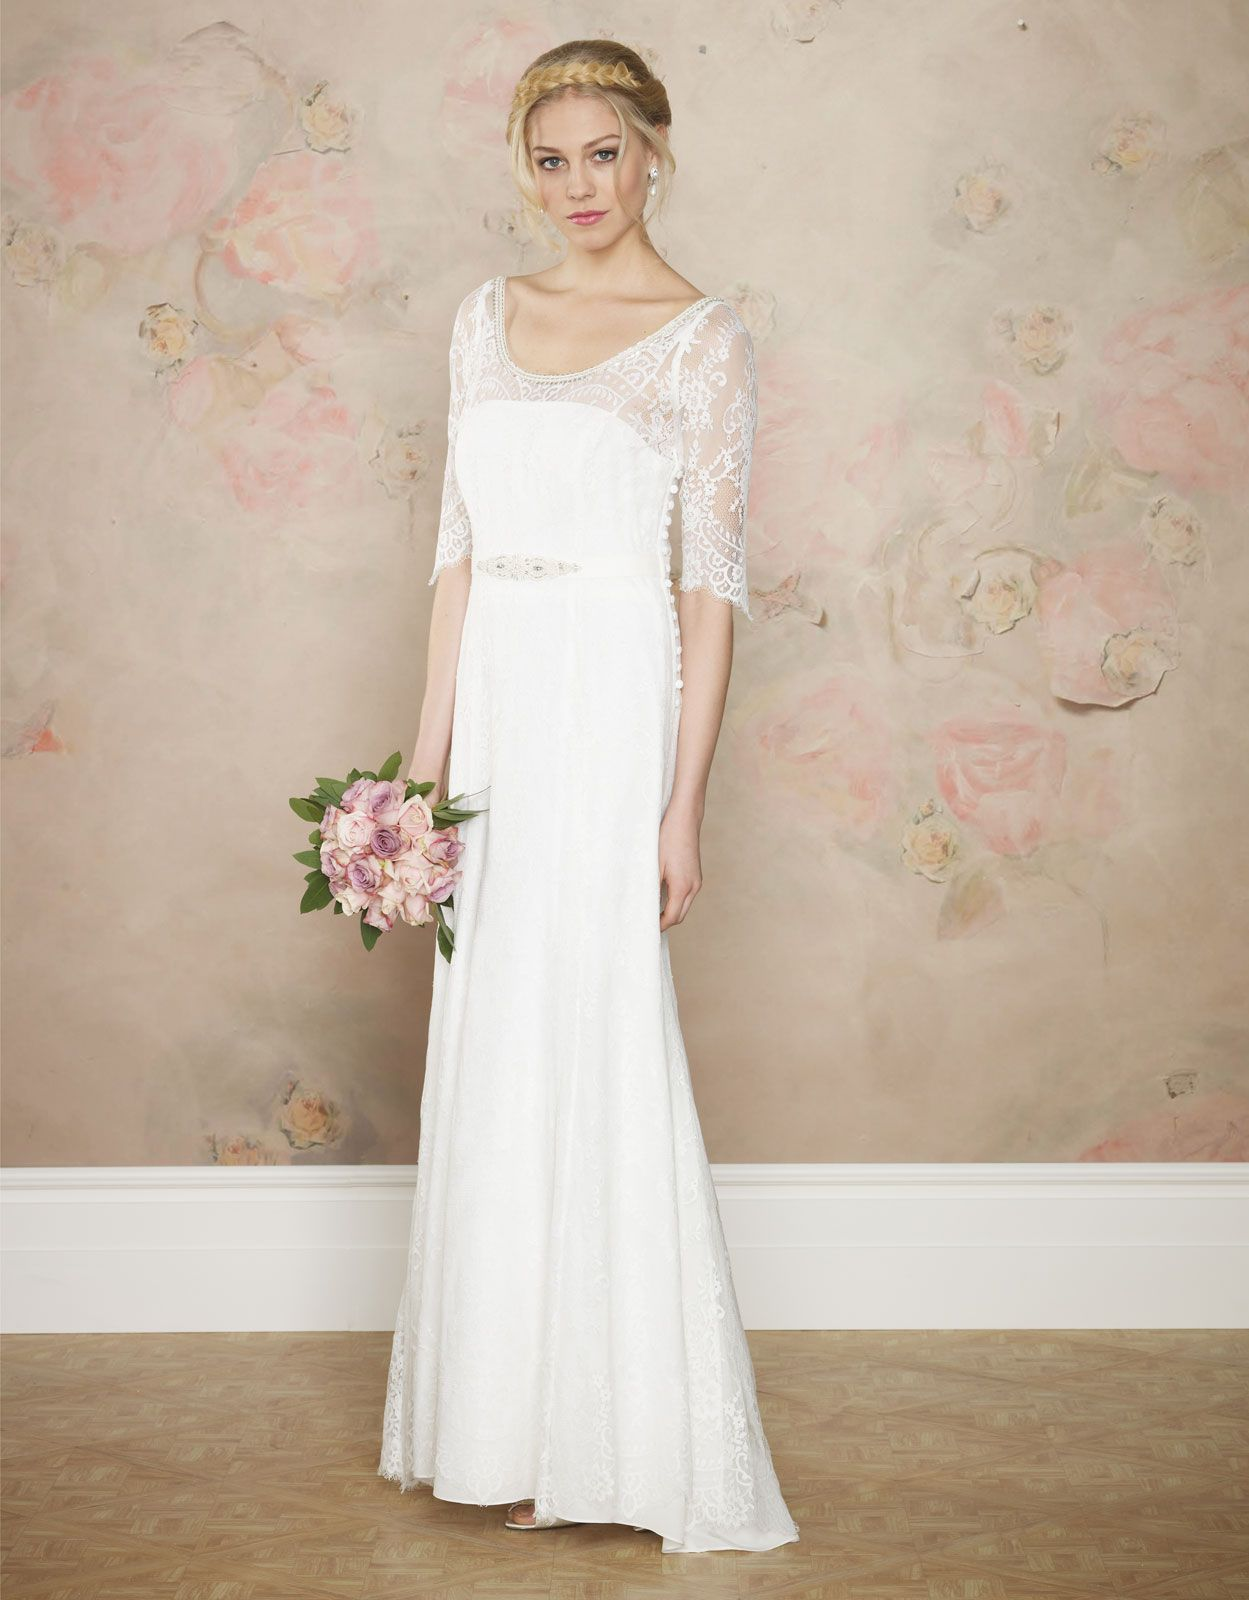 Monsoon dress wedding dresses pinterest for Monsoon wedding dresses uk